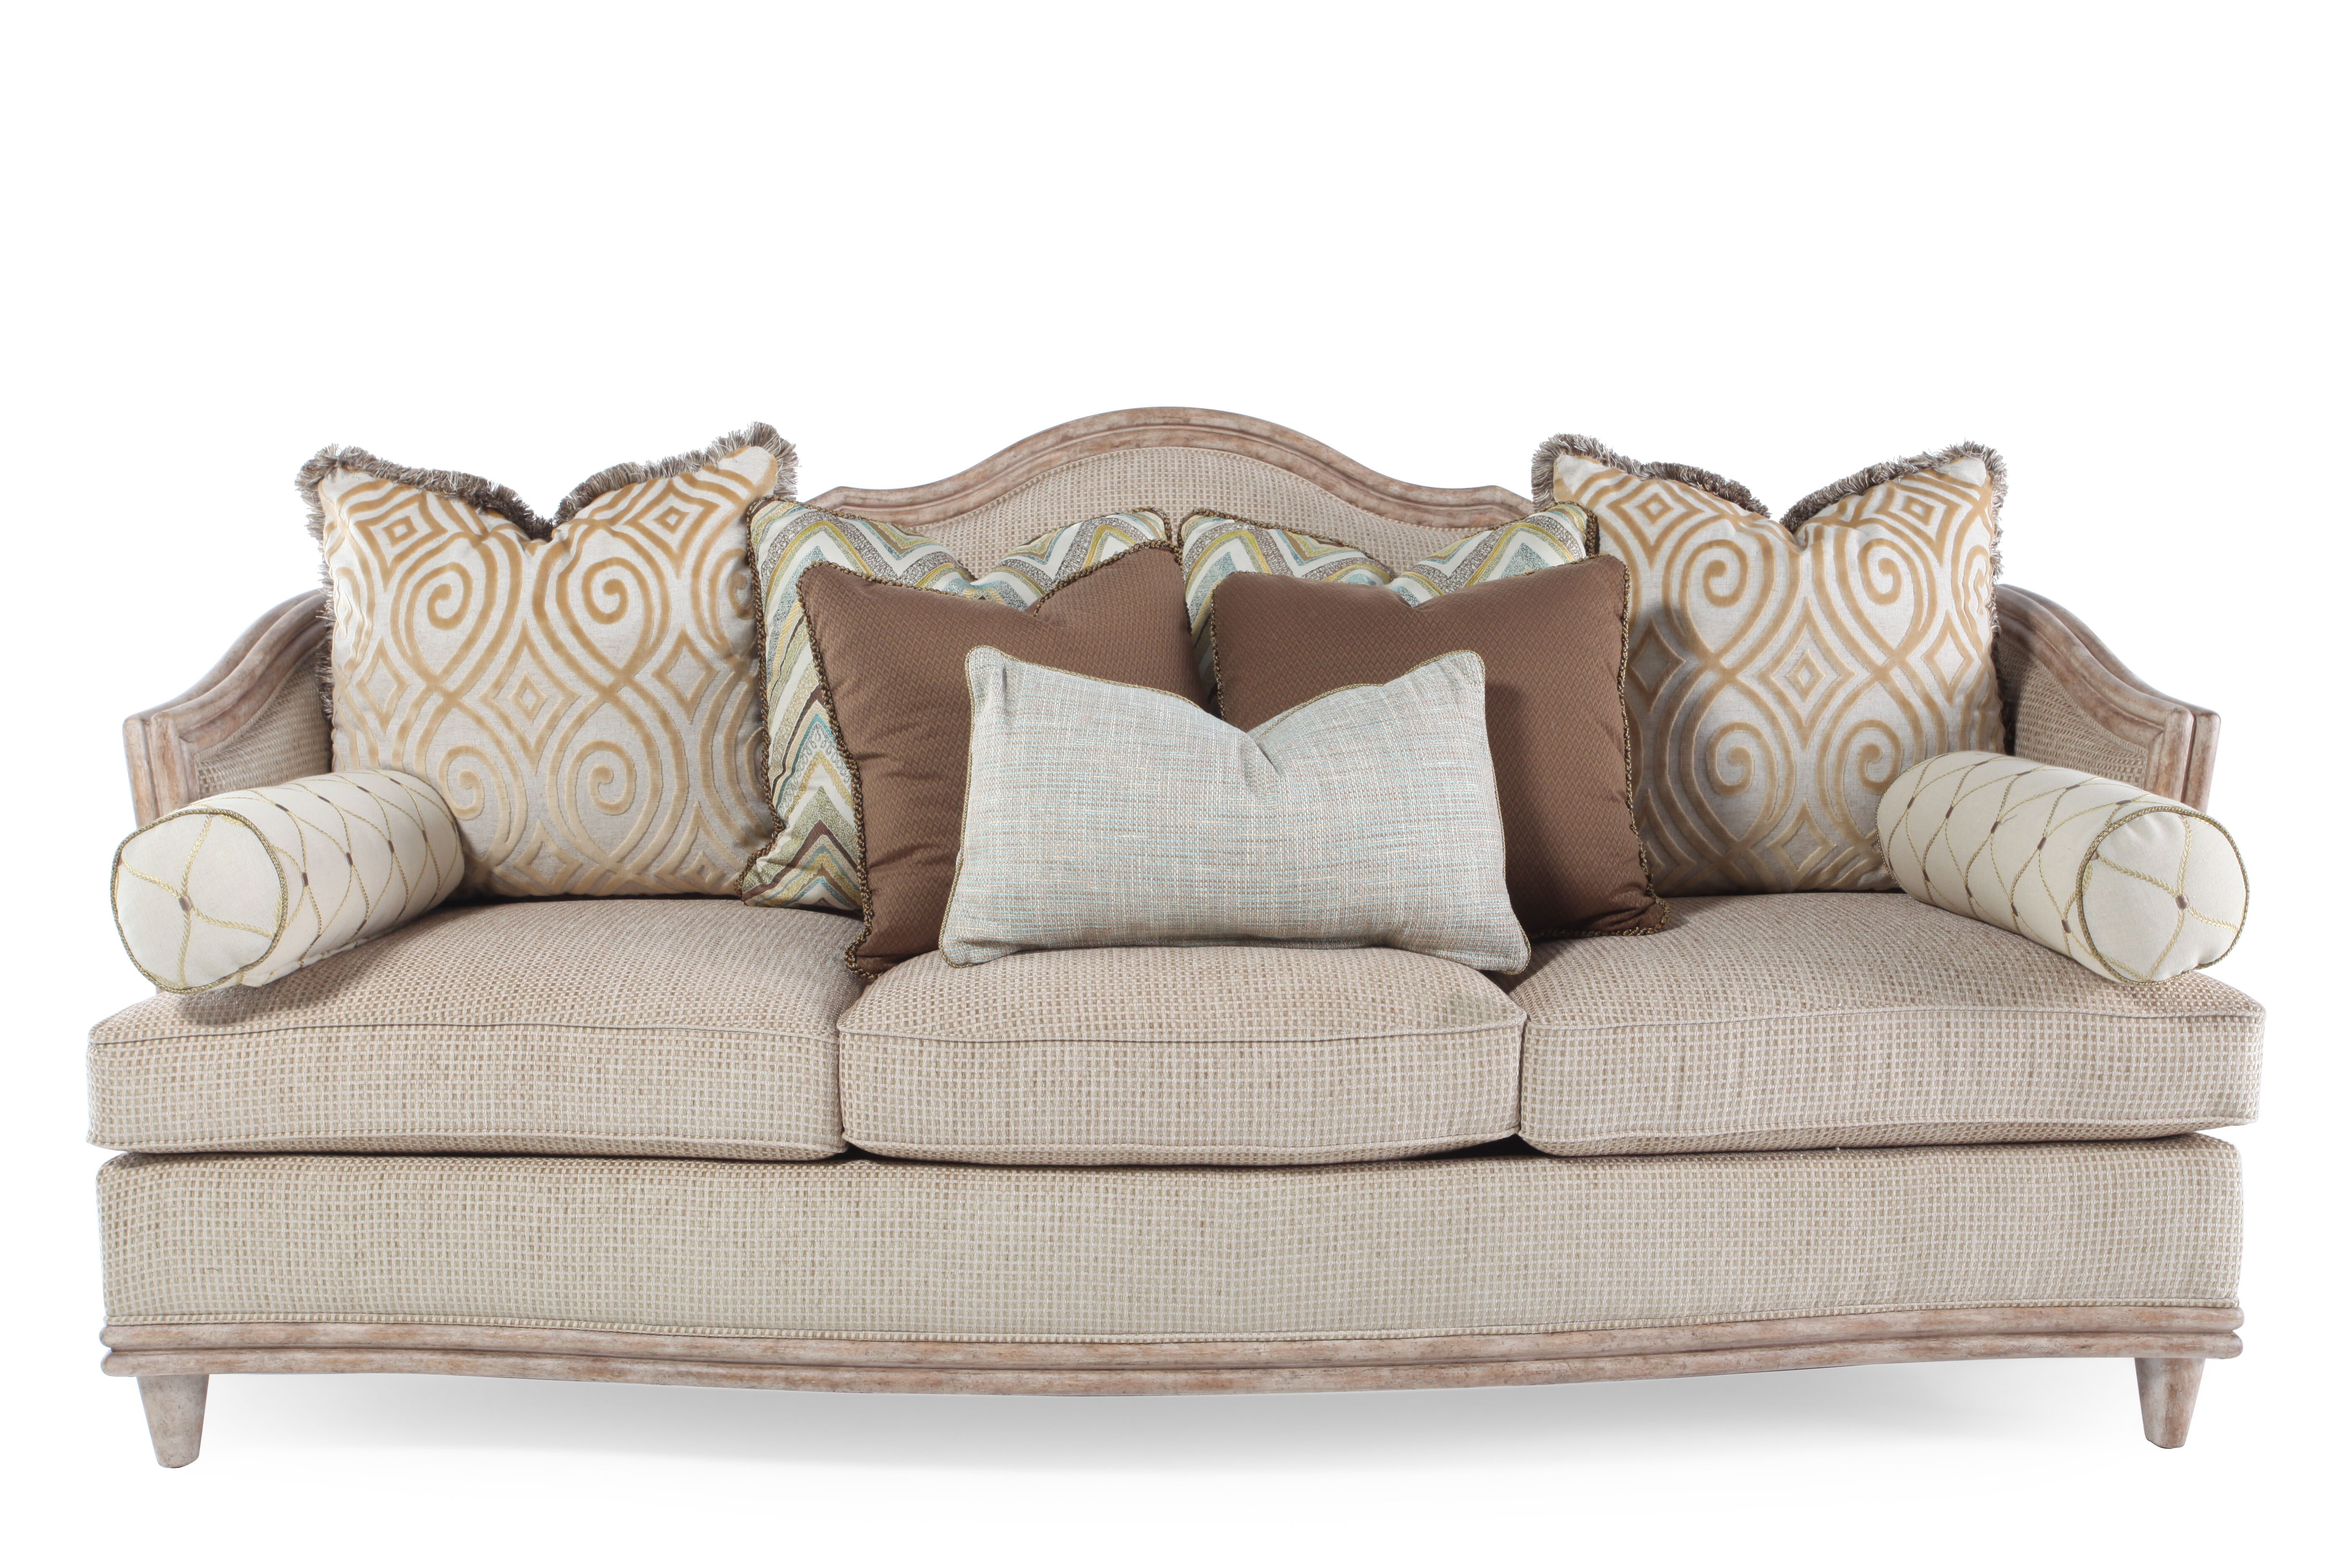 A.R.T. Furniture Pavilion Monterey Sofa  sc 1 st  Mathis Brothers : mathis brothers sectional sofas - Sectionals, Sofas & Couches